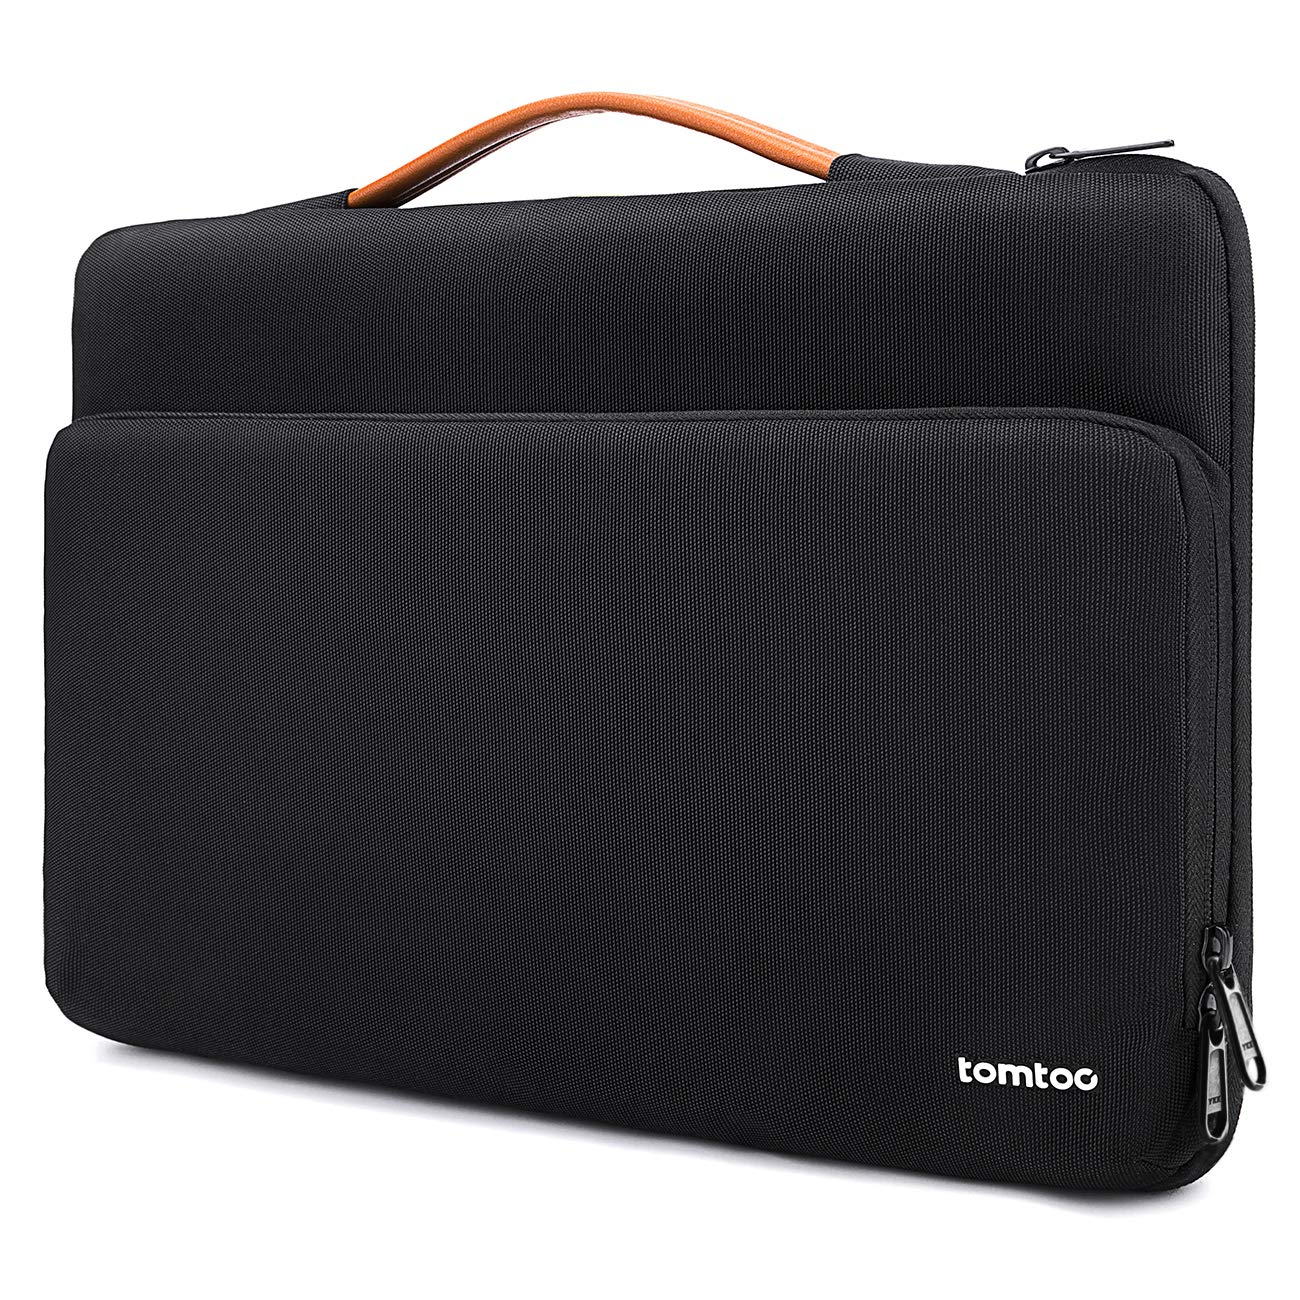 tomtoc 360 Protective Laptop Sleeve Case for 13.3 Inch Old MacBook Air, Old MacBook Pro Retina, 13.5 Inch Microsoft Surface Book 2/1, New Surface Laptop 3/2/1, Ultrabook Accessory Bag by tomtoc